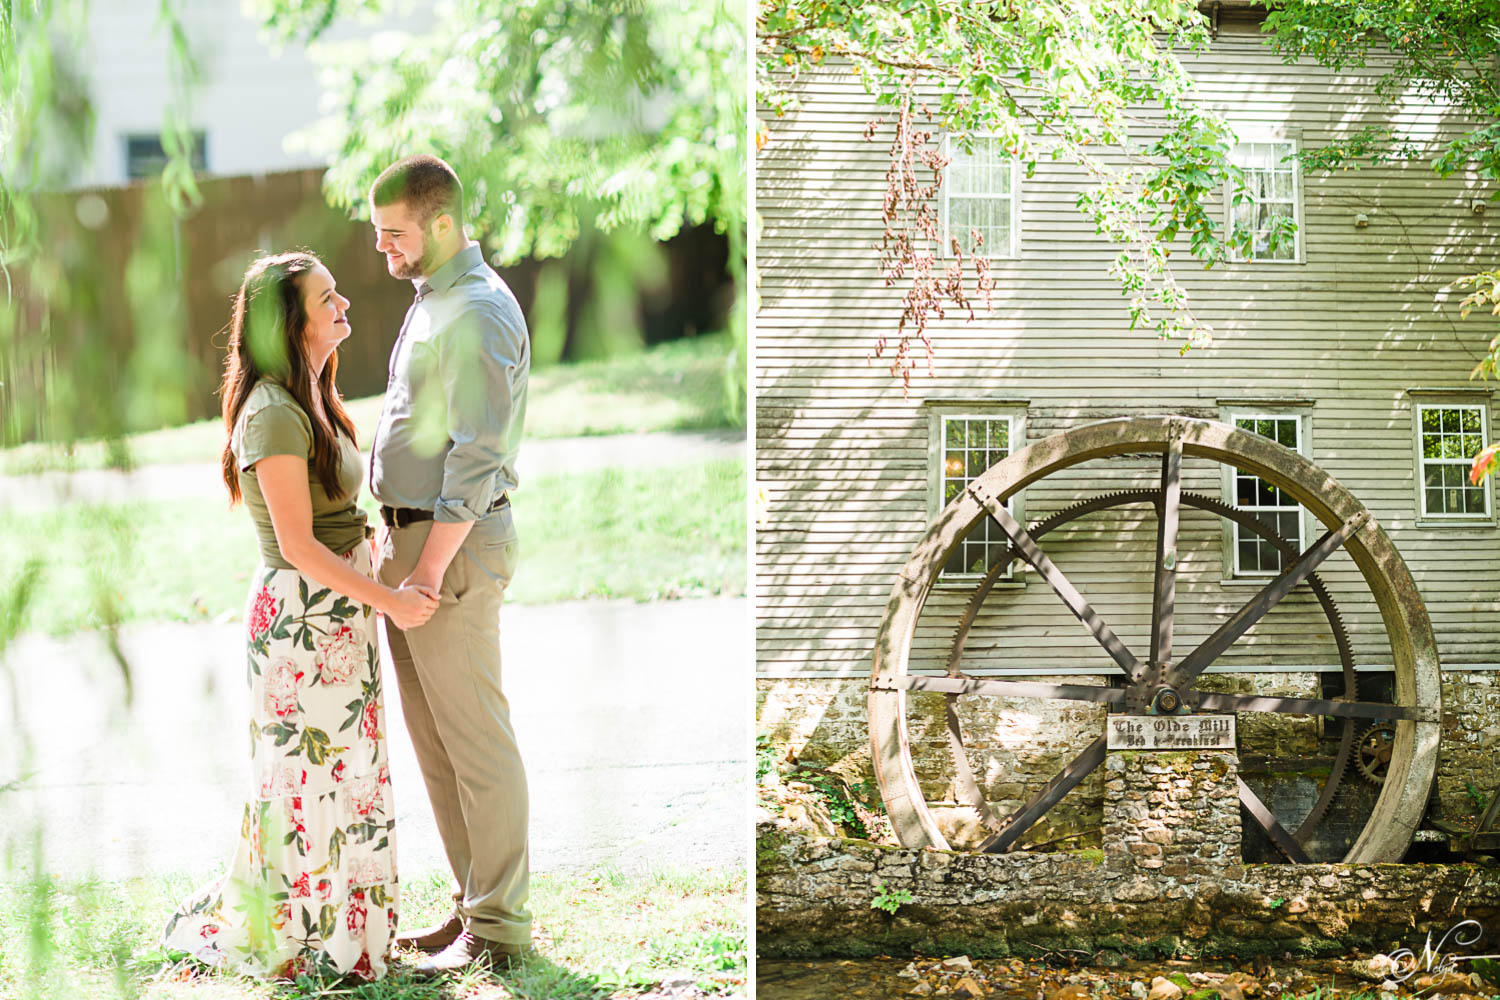 engaged couple holding hands under a willow tree at the old mill in Cumberland Gap TN. And the old mill wheel in August